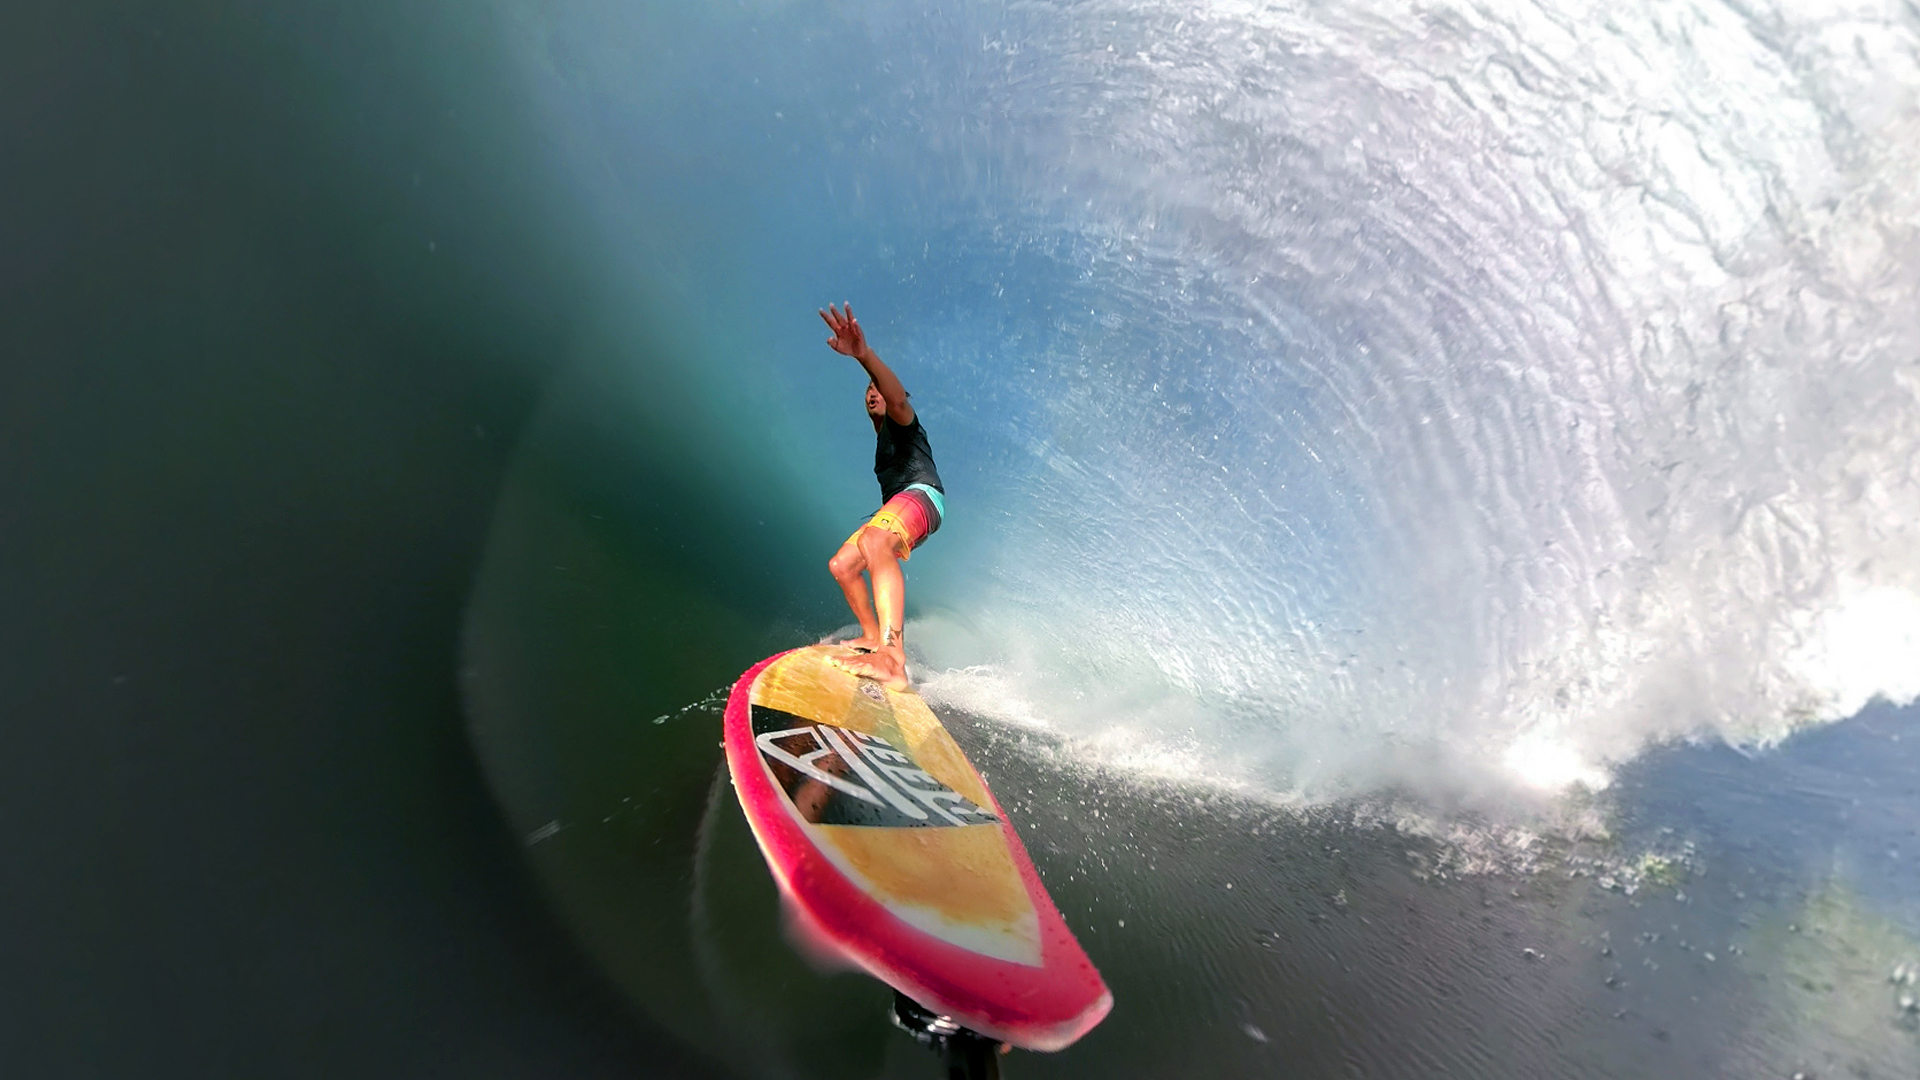 d8e817cbed4 The 360-Degree GoPro Fusion Camera Amazing Barrel Photos | SURFER ...